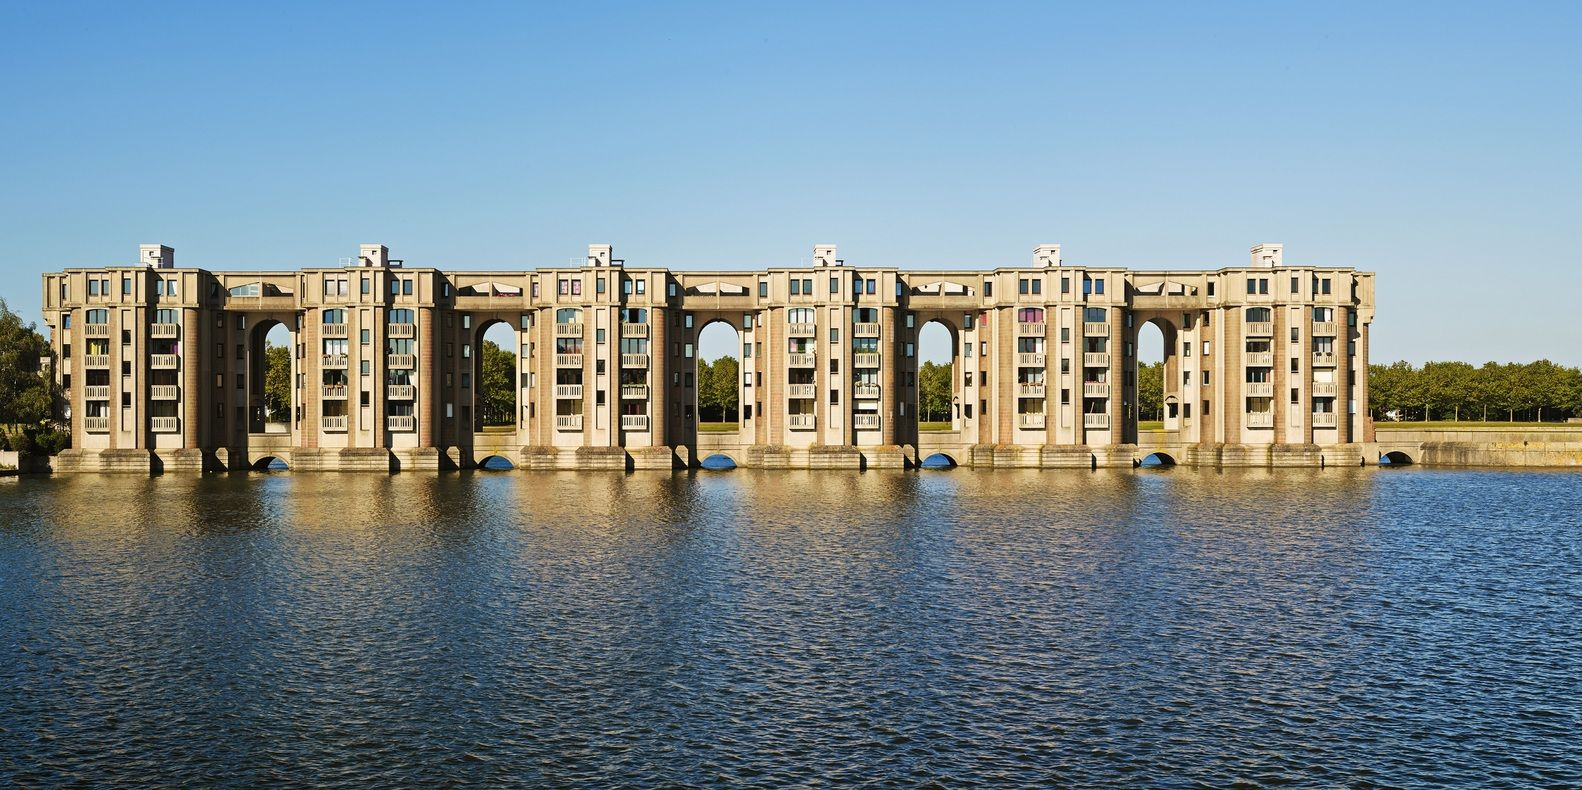 Gallery Of Ricardo Bofill Why Are Historical Towns More Beautiful Than Modern Cities 55 Ricardo Bofill Architecture French Formal Garden